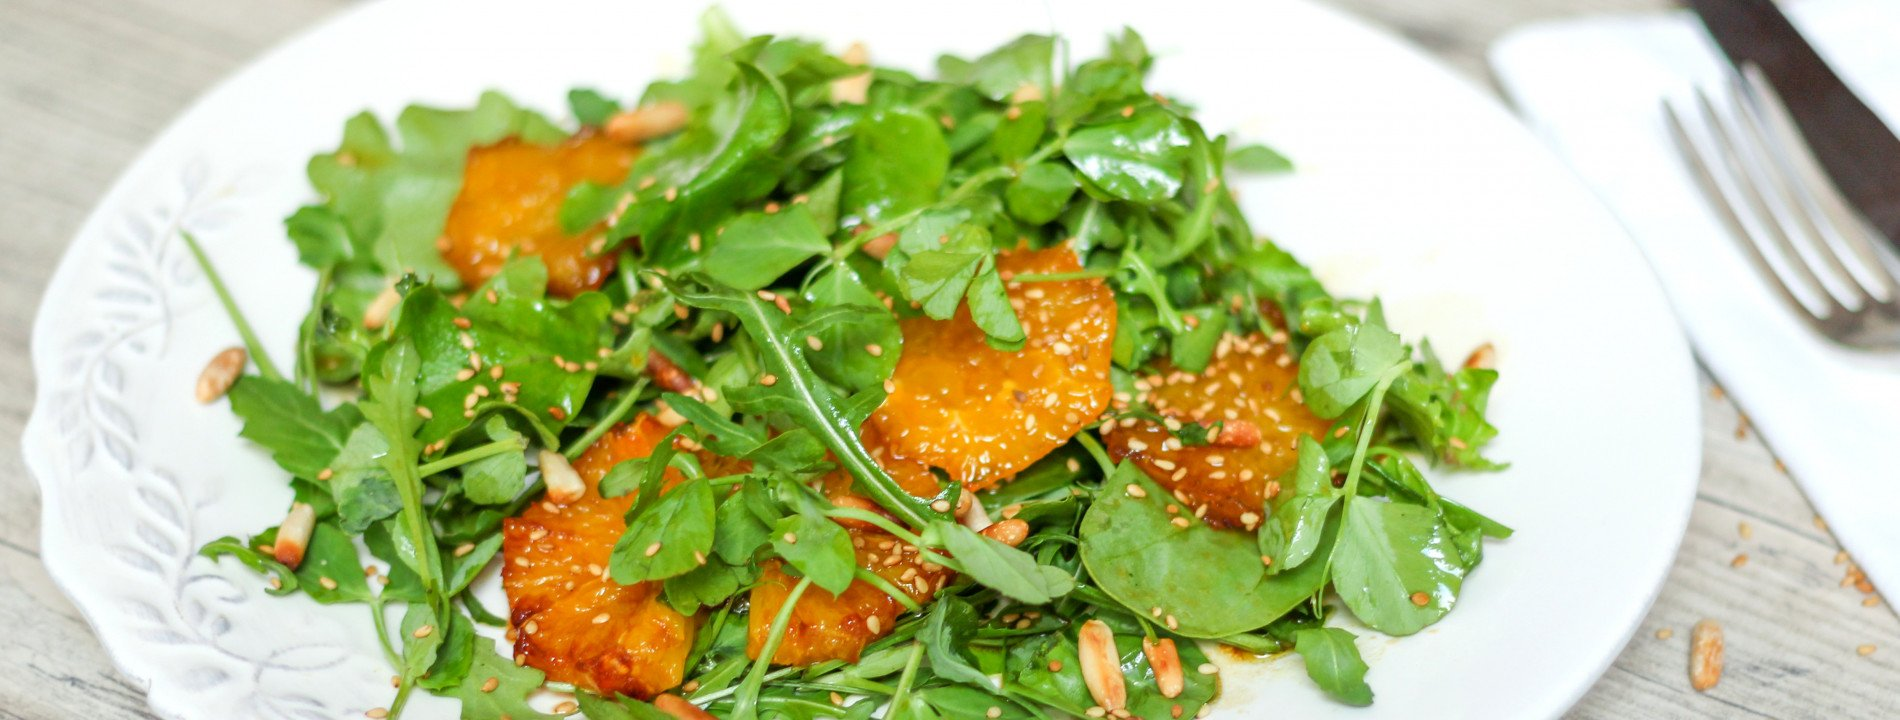 Green Salad with Caramelized Oranges